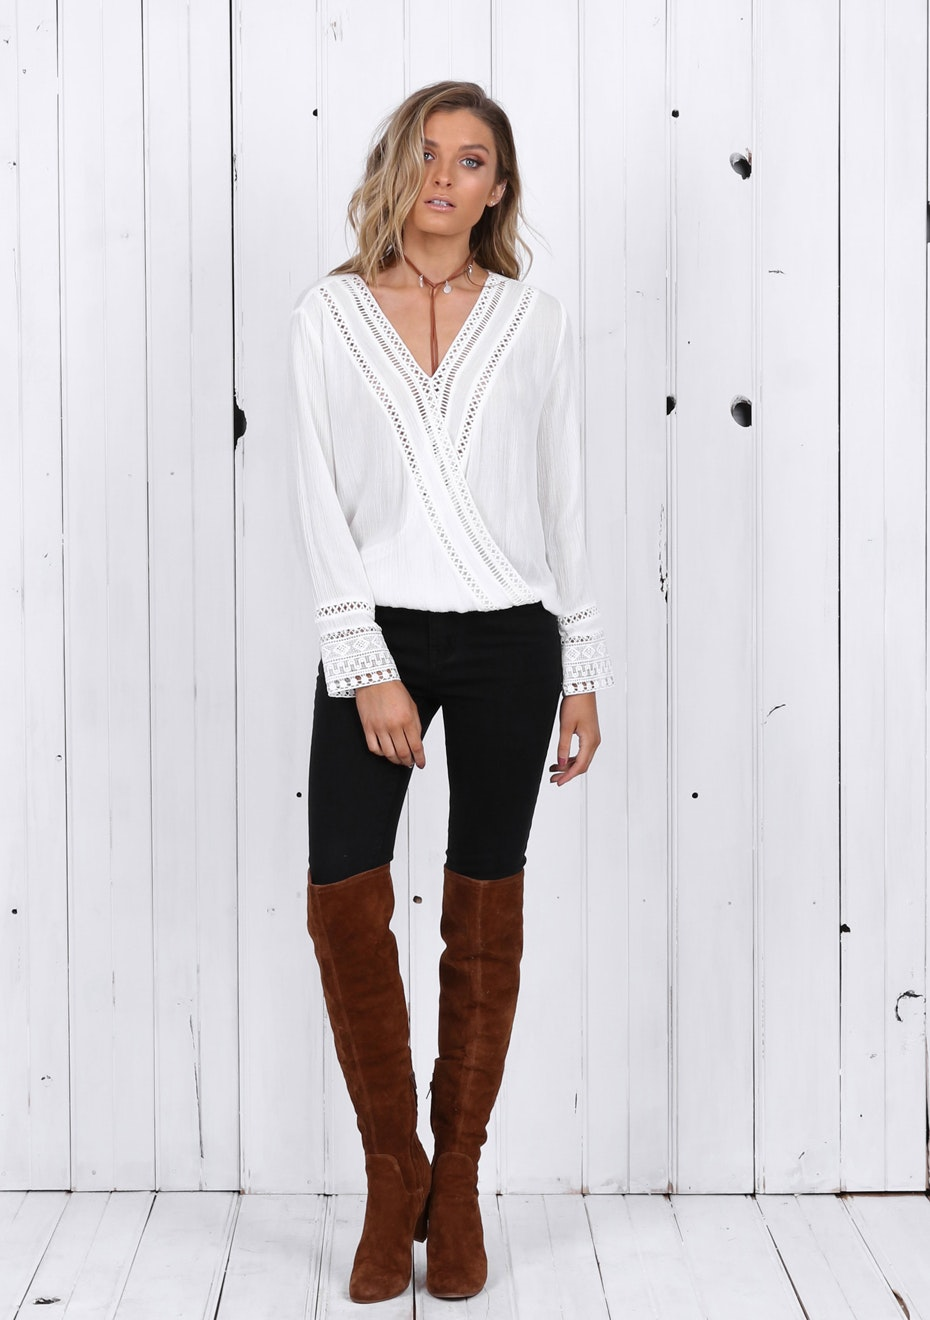 Madison - LUCILLE TOP - WHITE